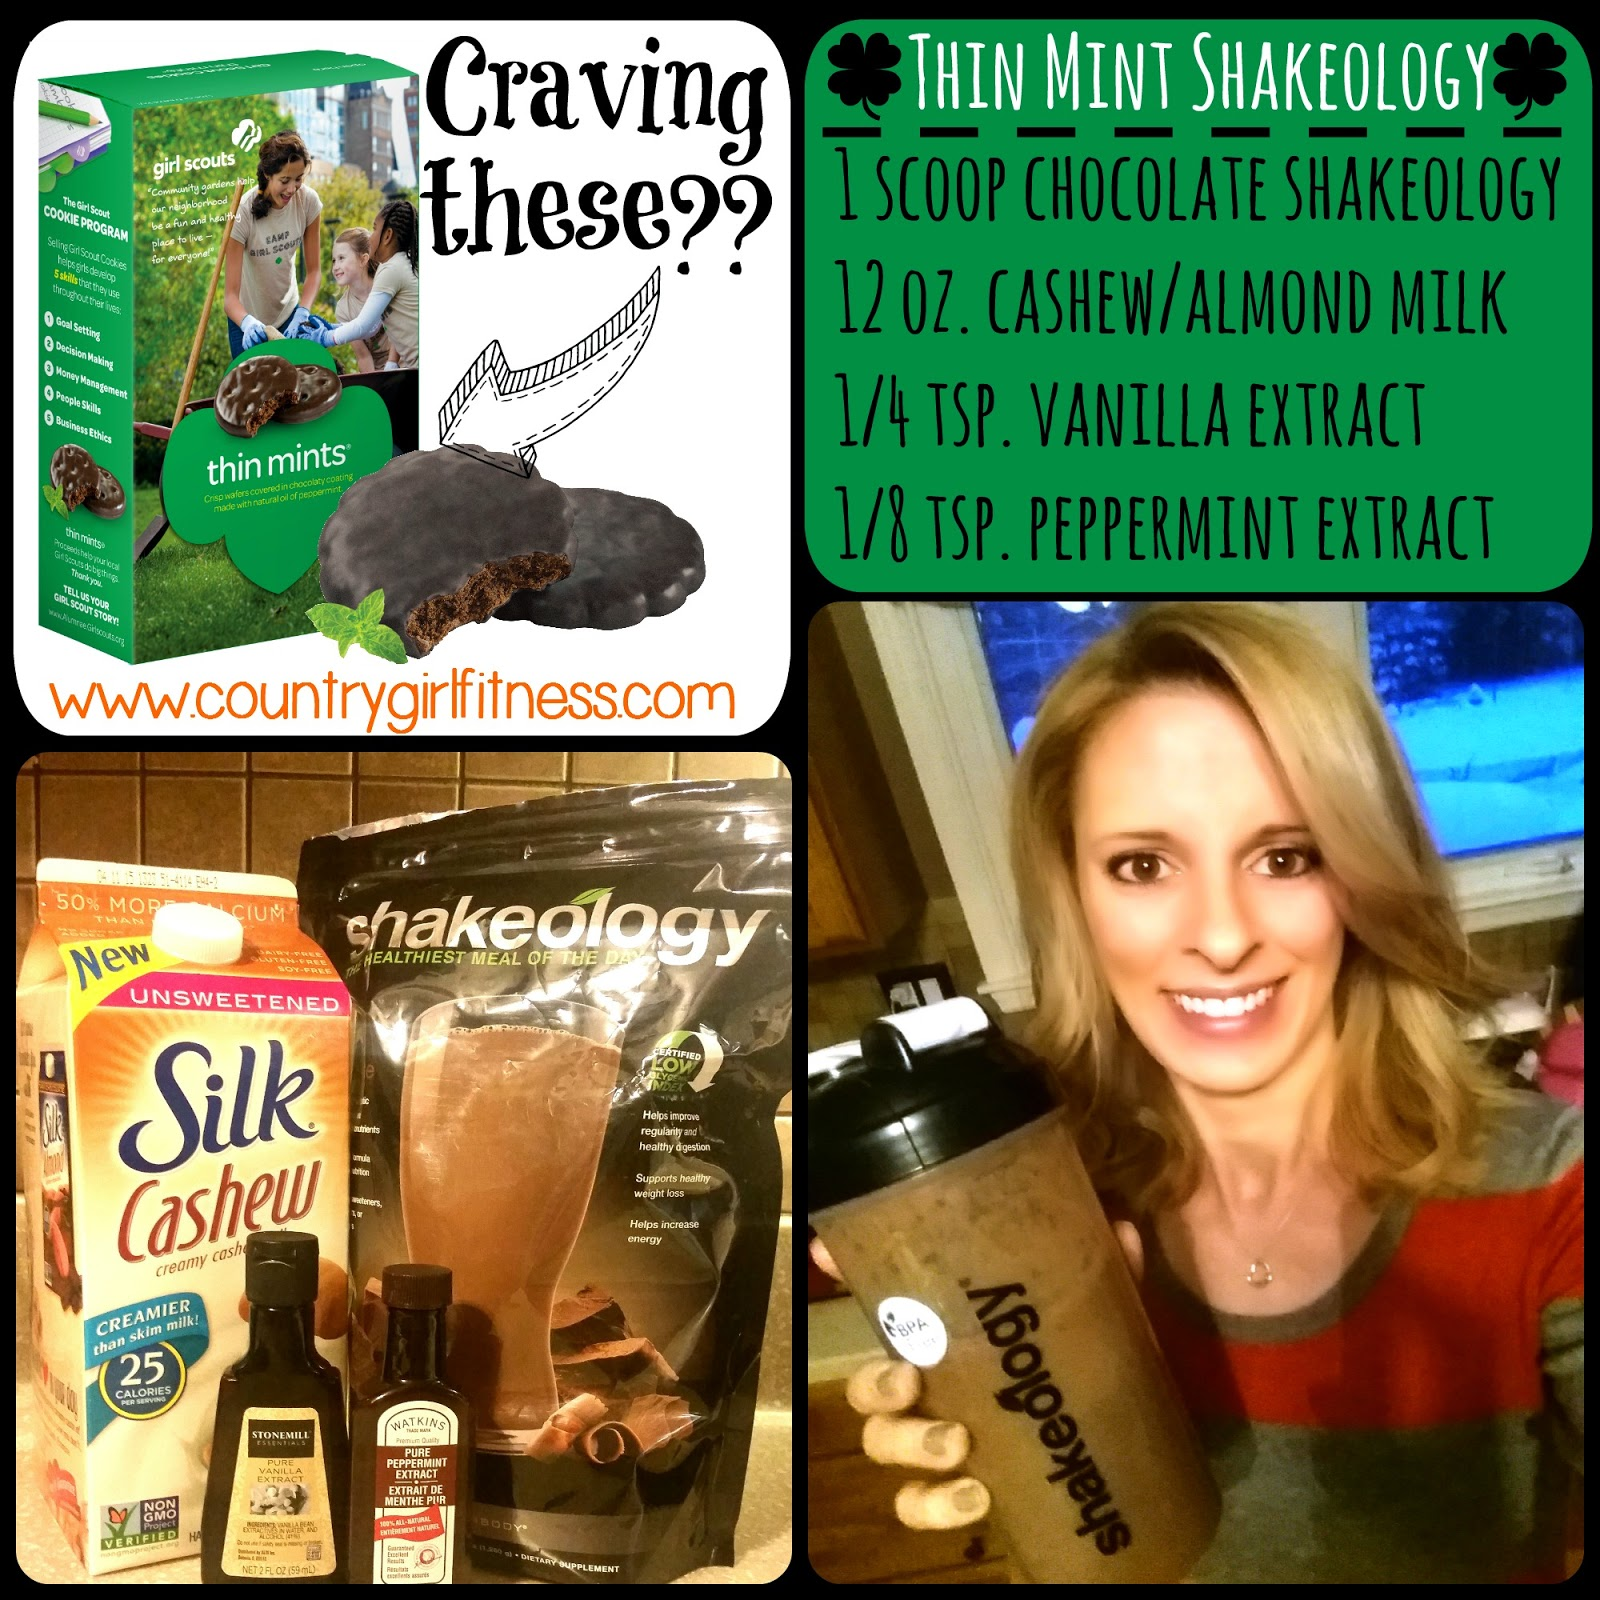 www.myshakeology.com/coachcheyennetracy